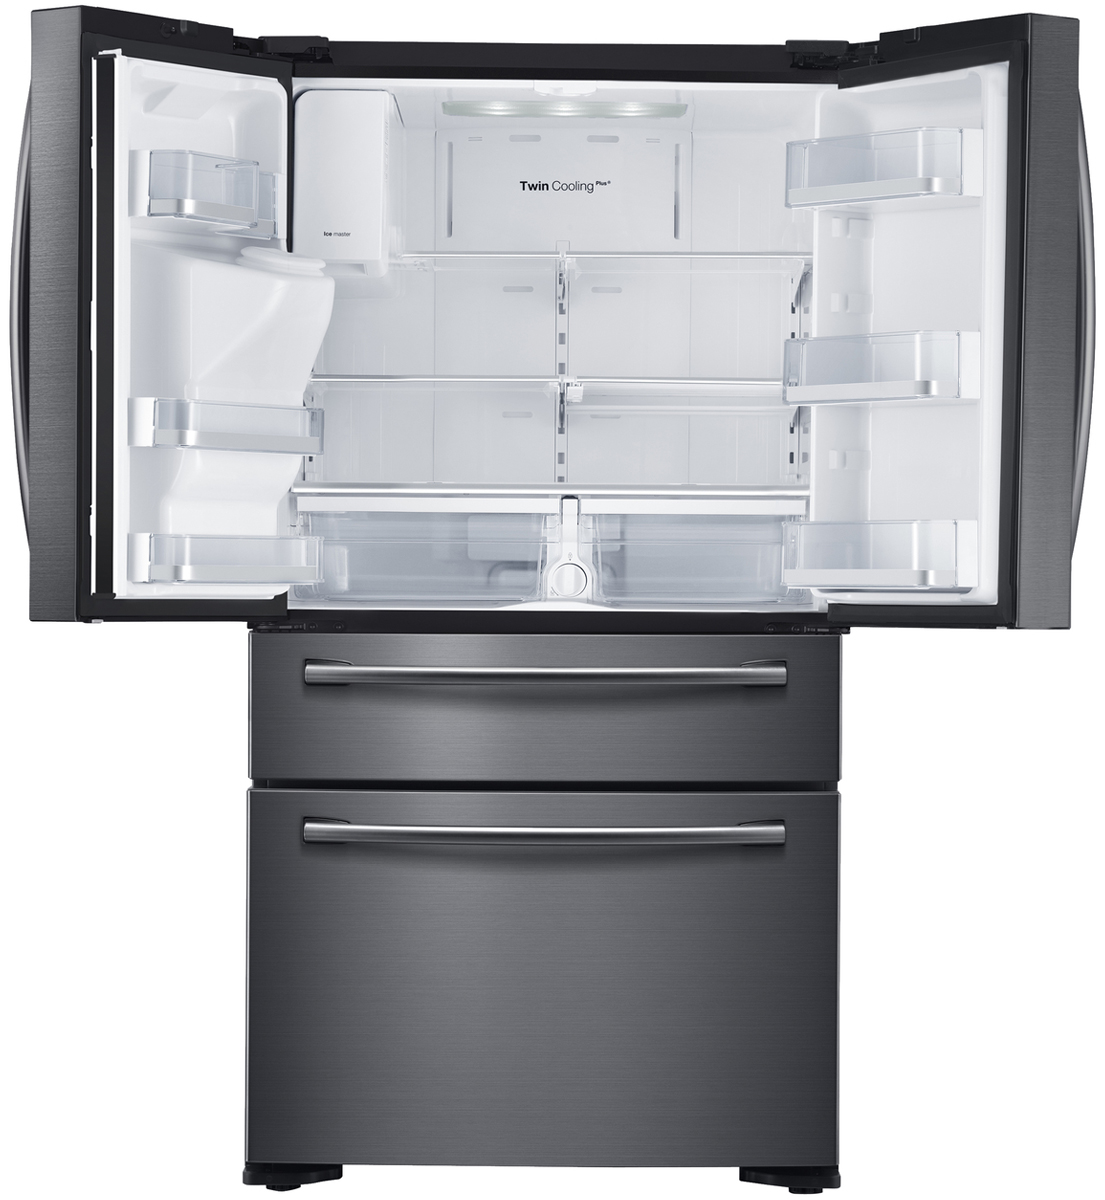 Samsung 680l 4 Door French Door Fridgeicewater Dispenser Black